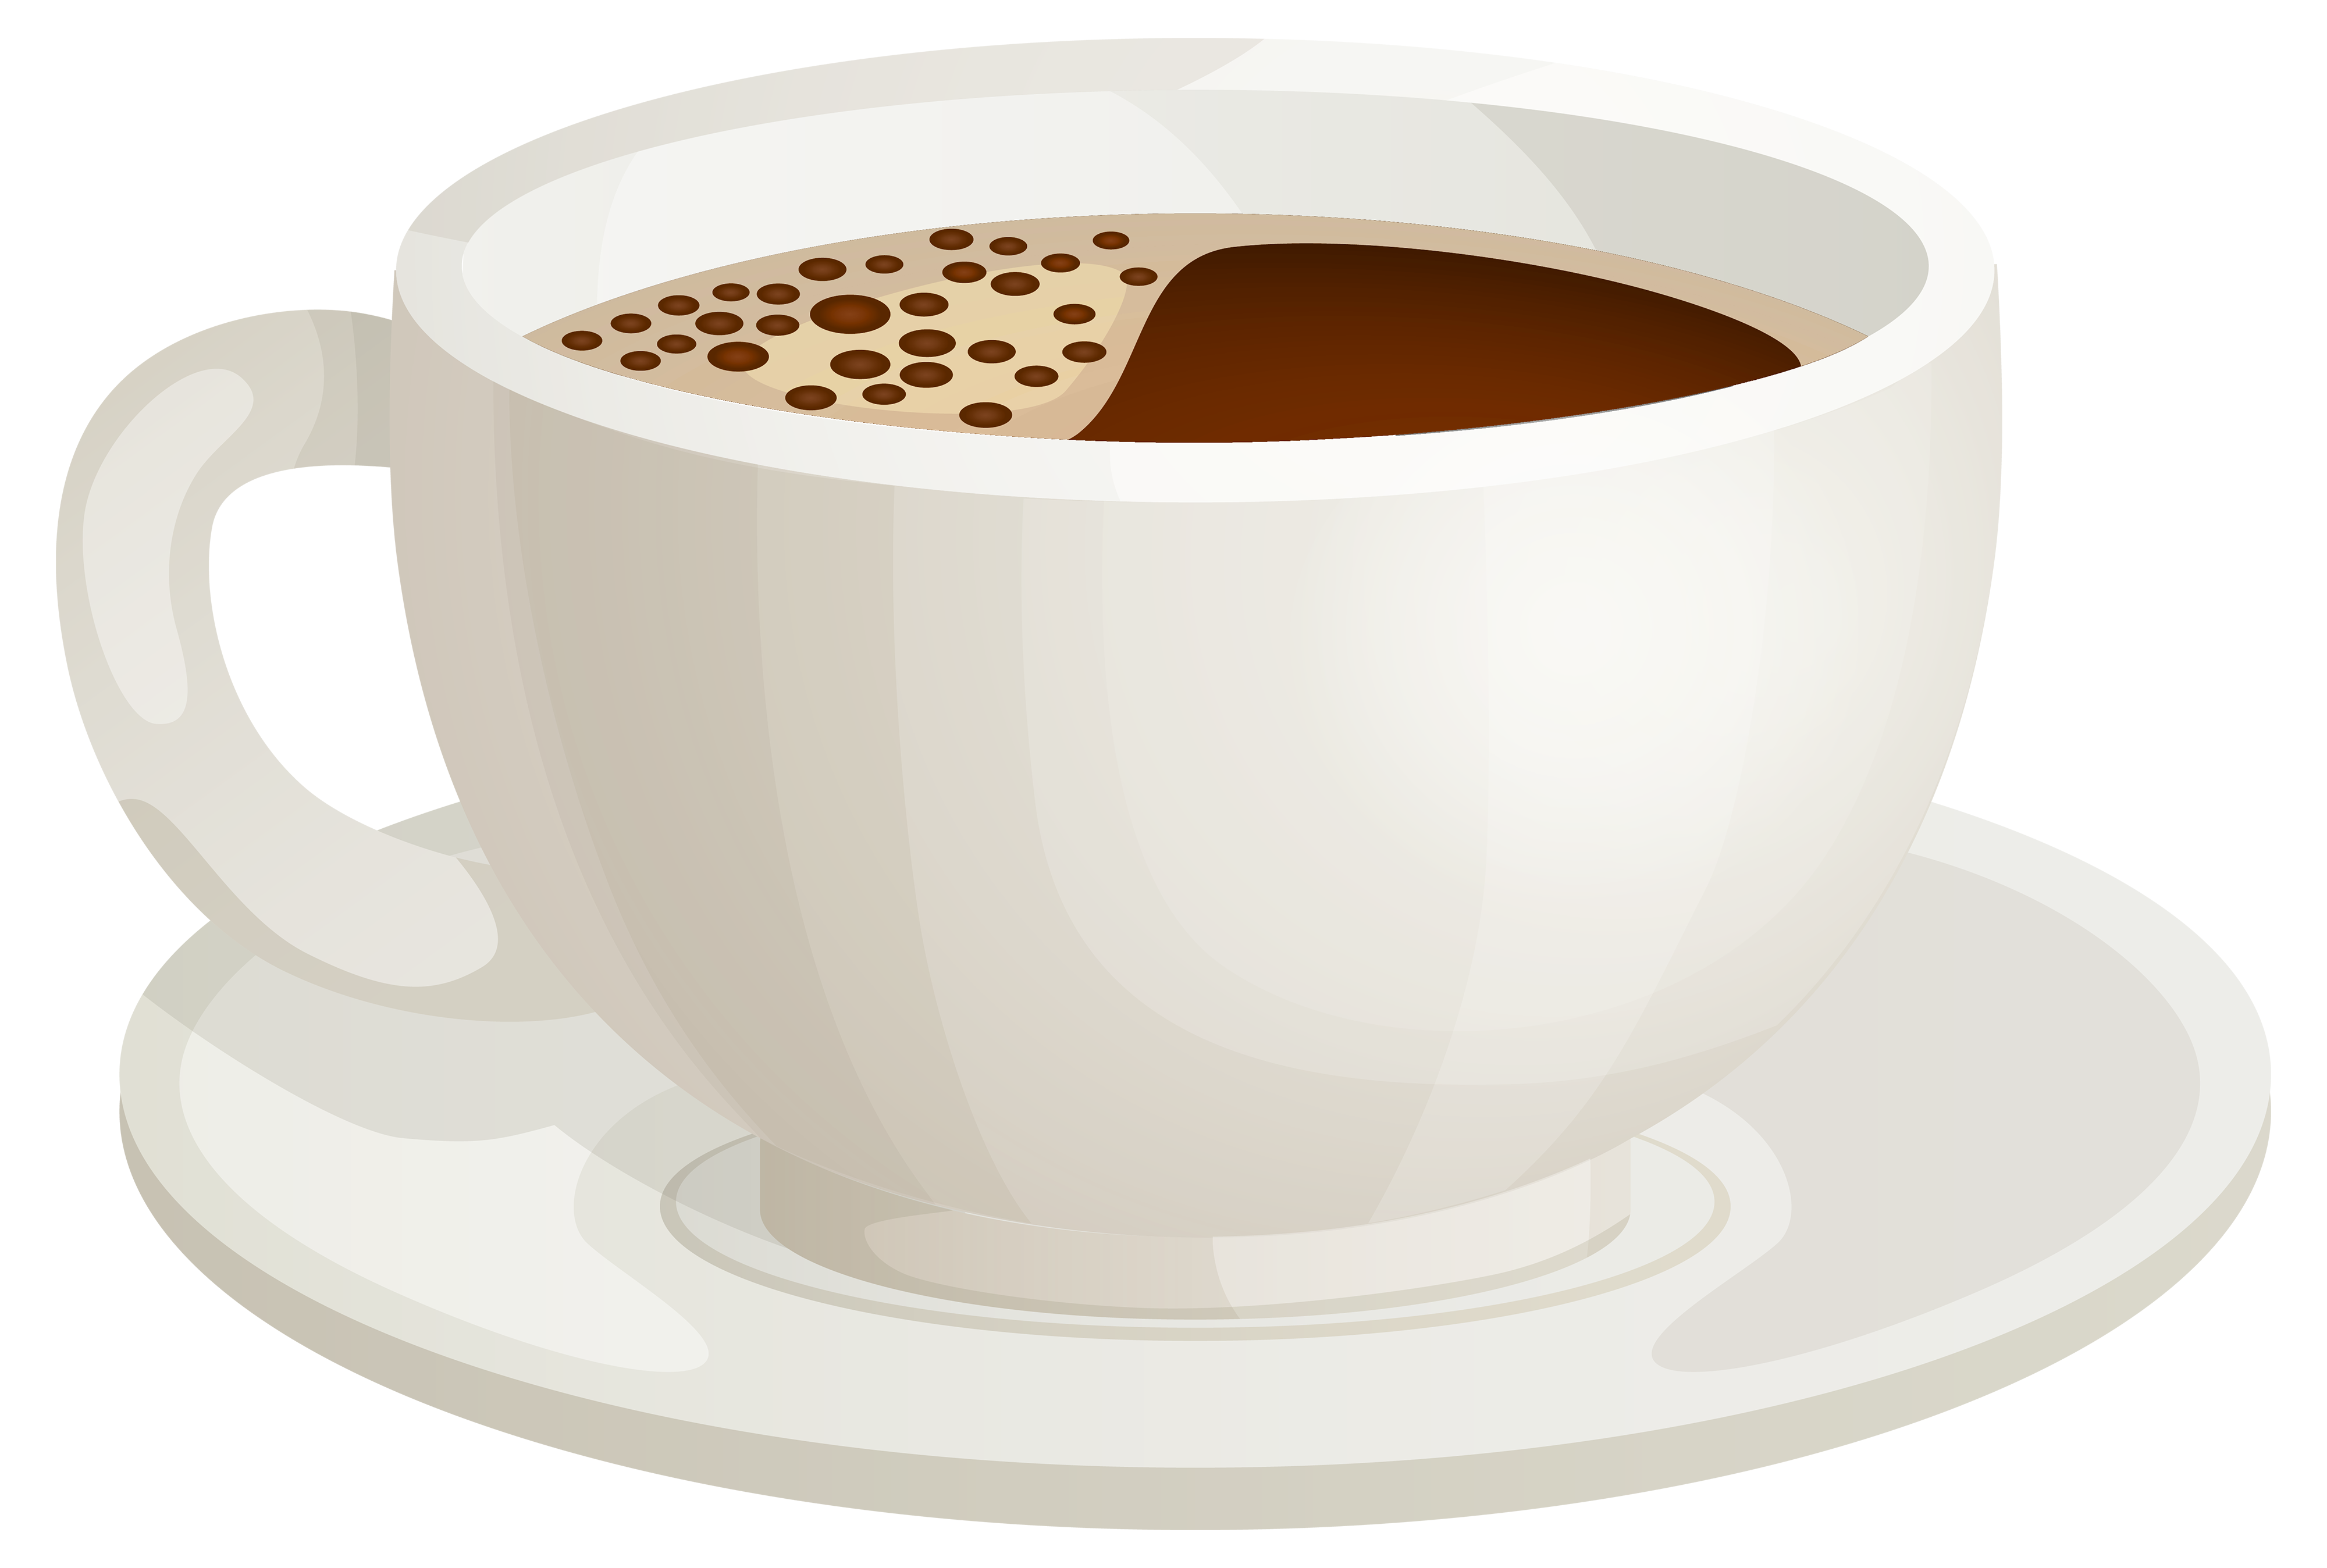 Coffee clipart cup soup Clipart PNG WEB Clipart Coffee